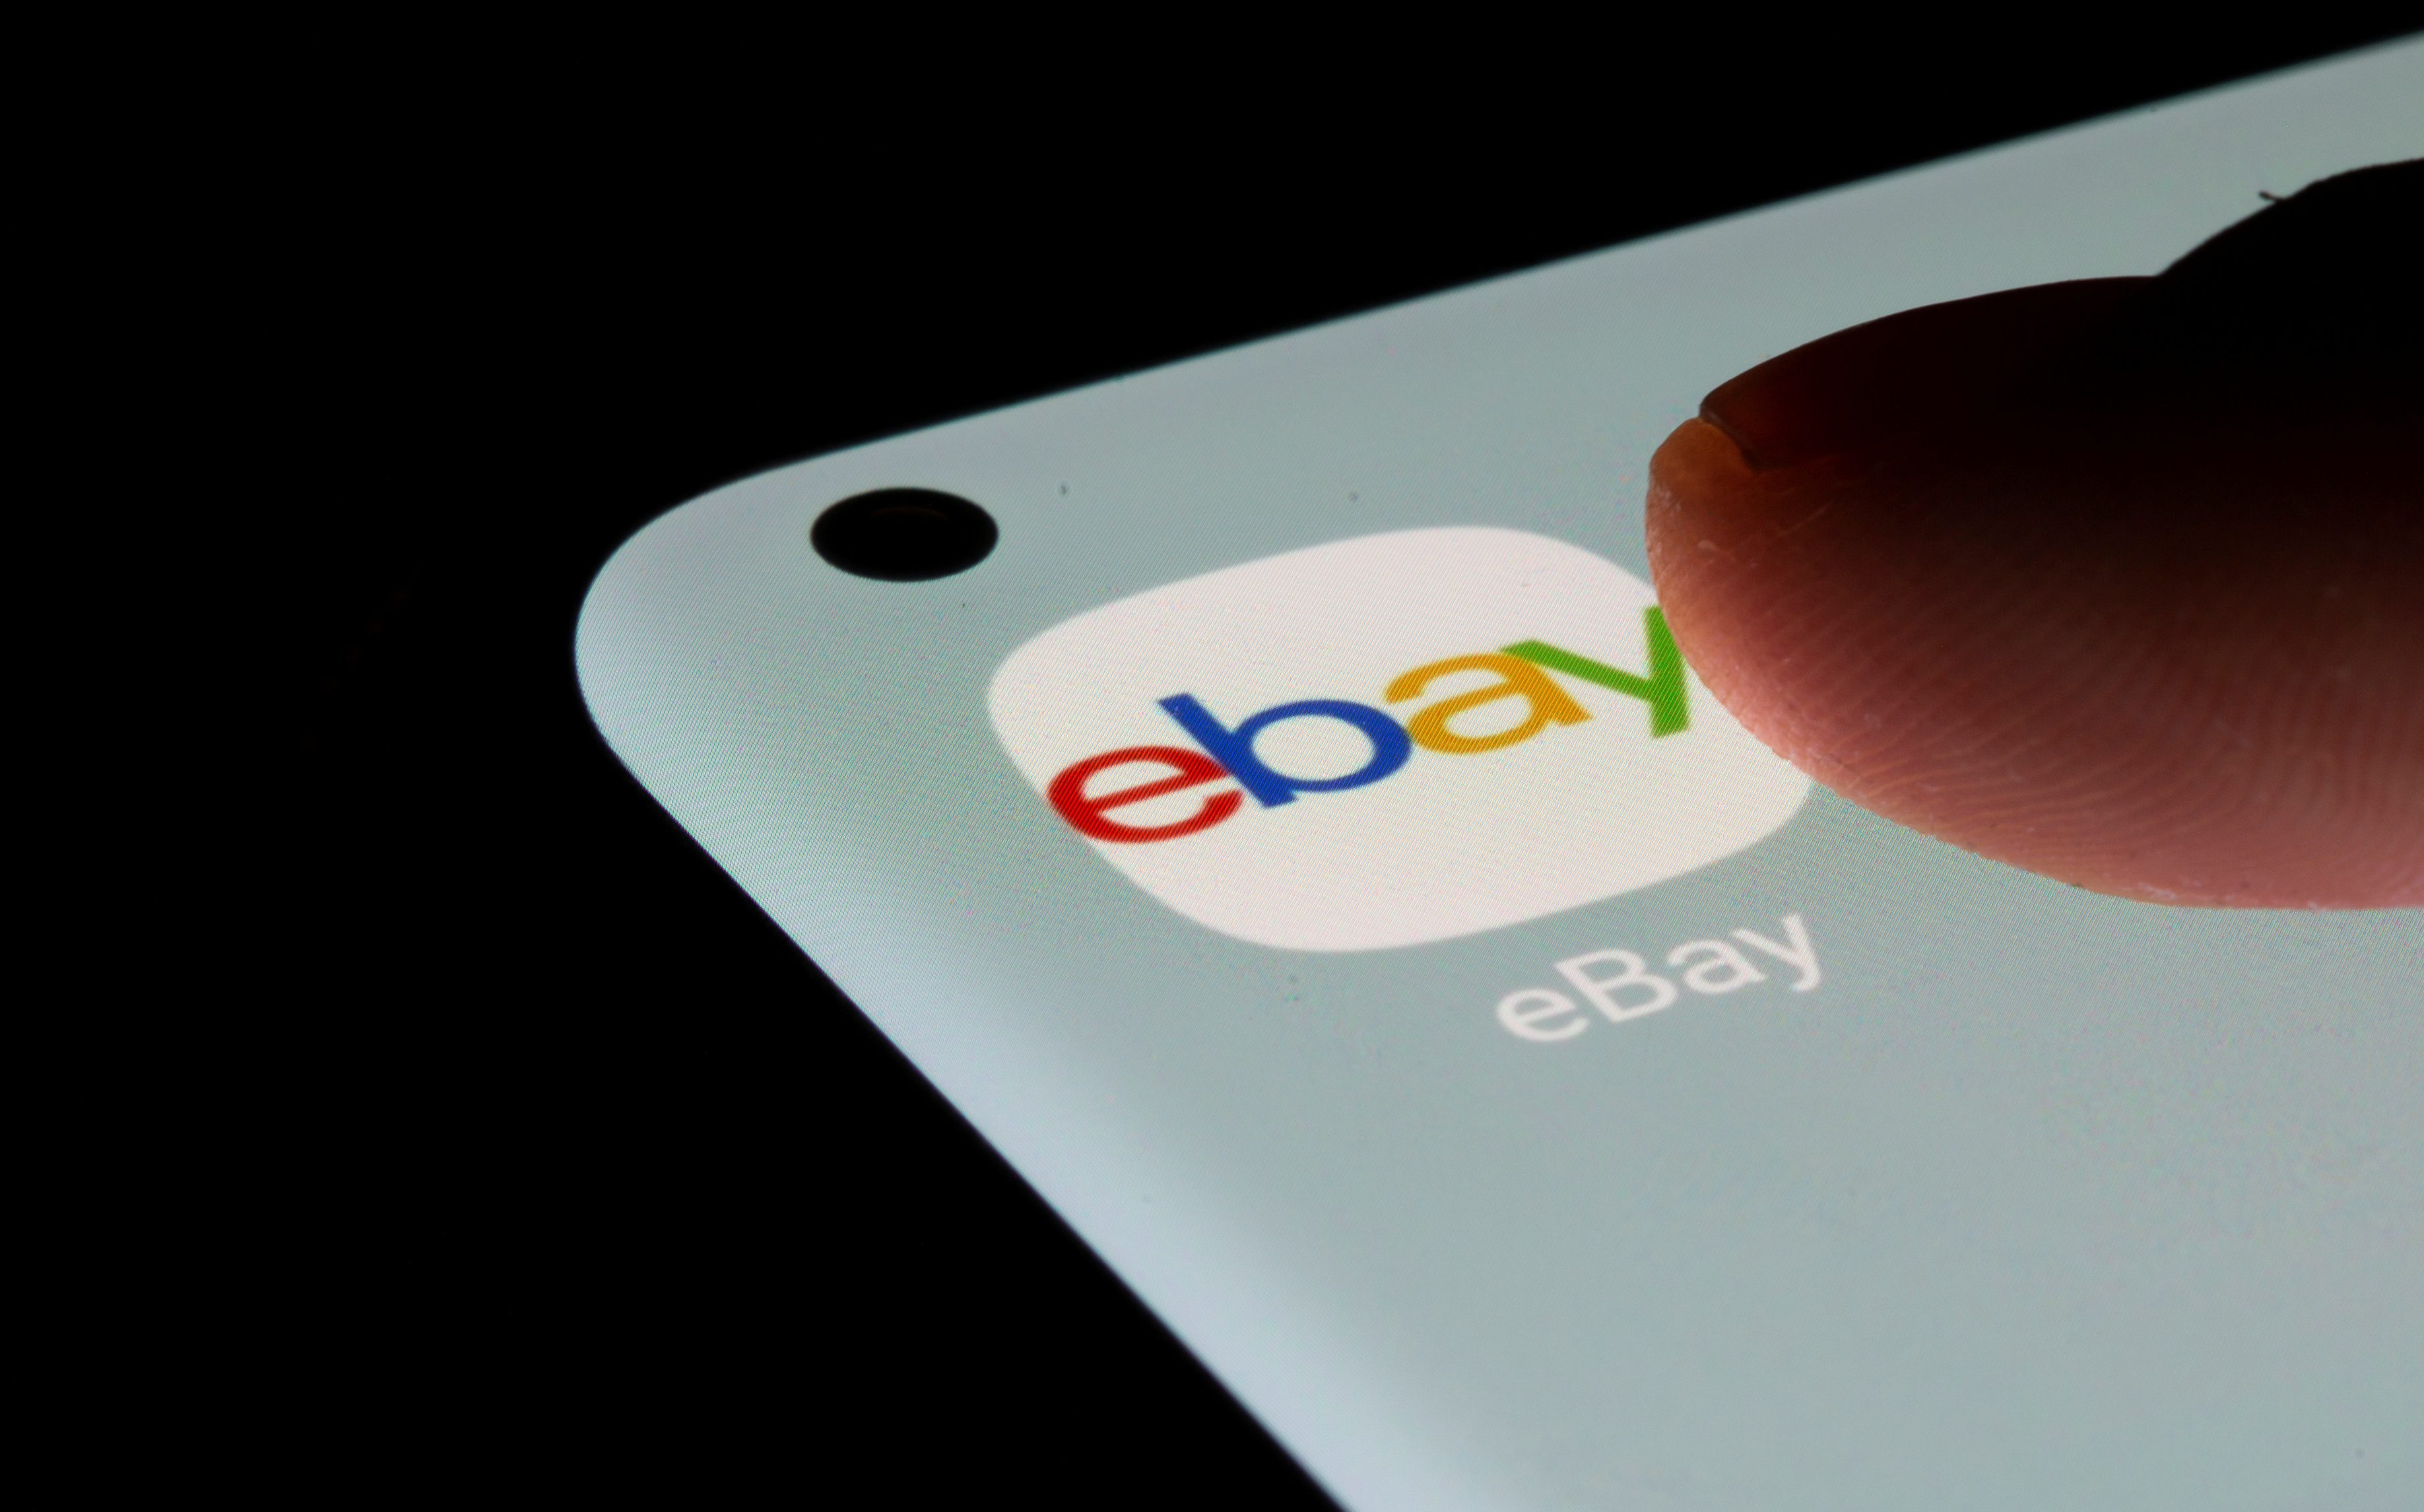 The eBay app is seen on a smartphone in this illustration taken, July 13, 2021. REUTERS/Dado Ruvic/Illustration